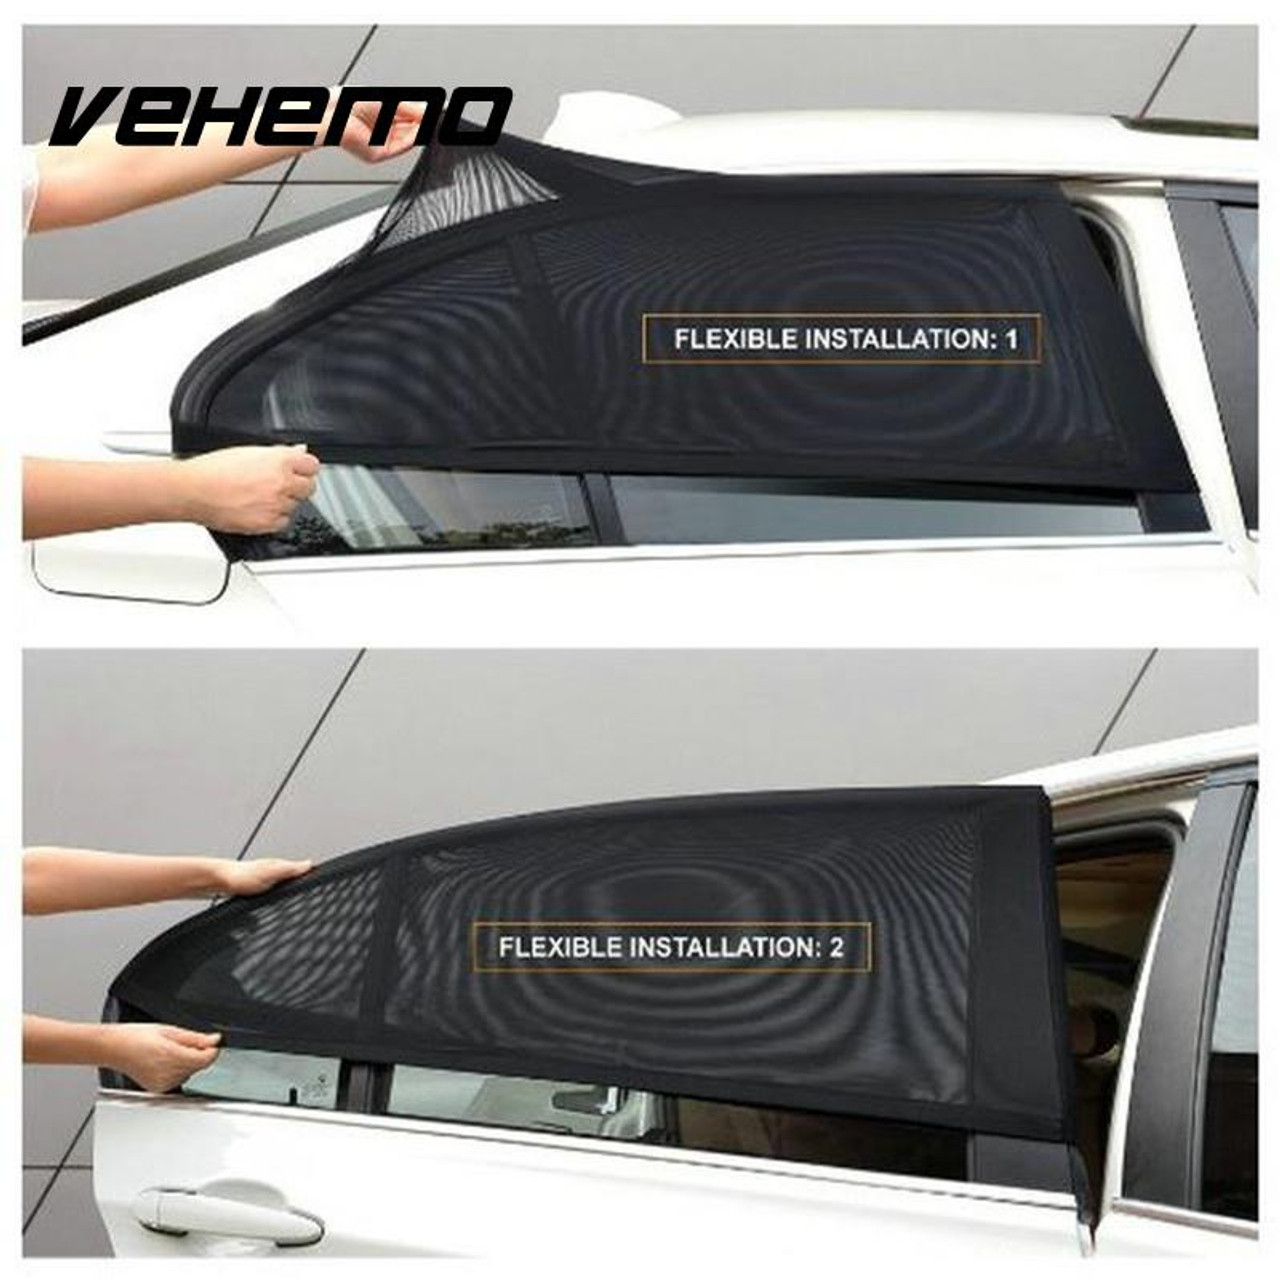 2Pcs Car Window Cover Sunshade Curtain UV Protection Shield Sun Shade Visor  Mesh Solar Mosquito Dust Protection Car-covers New - OnshopDeals.Com b029c6cce772